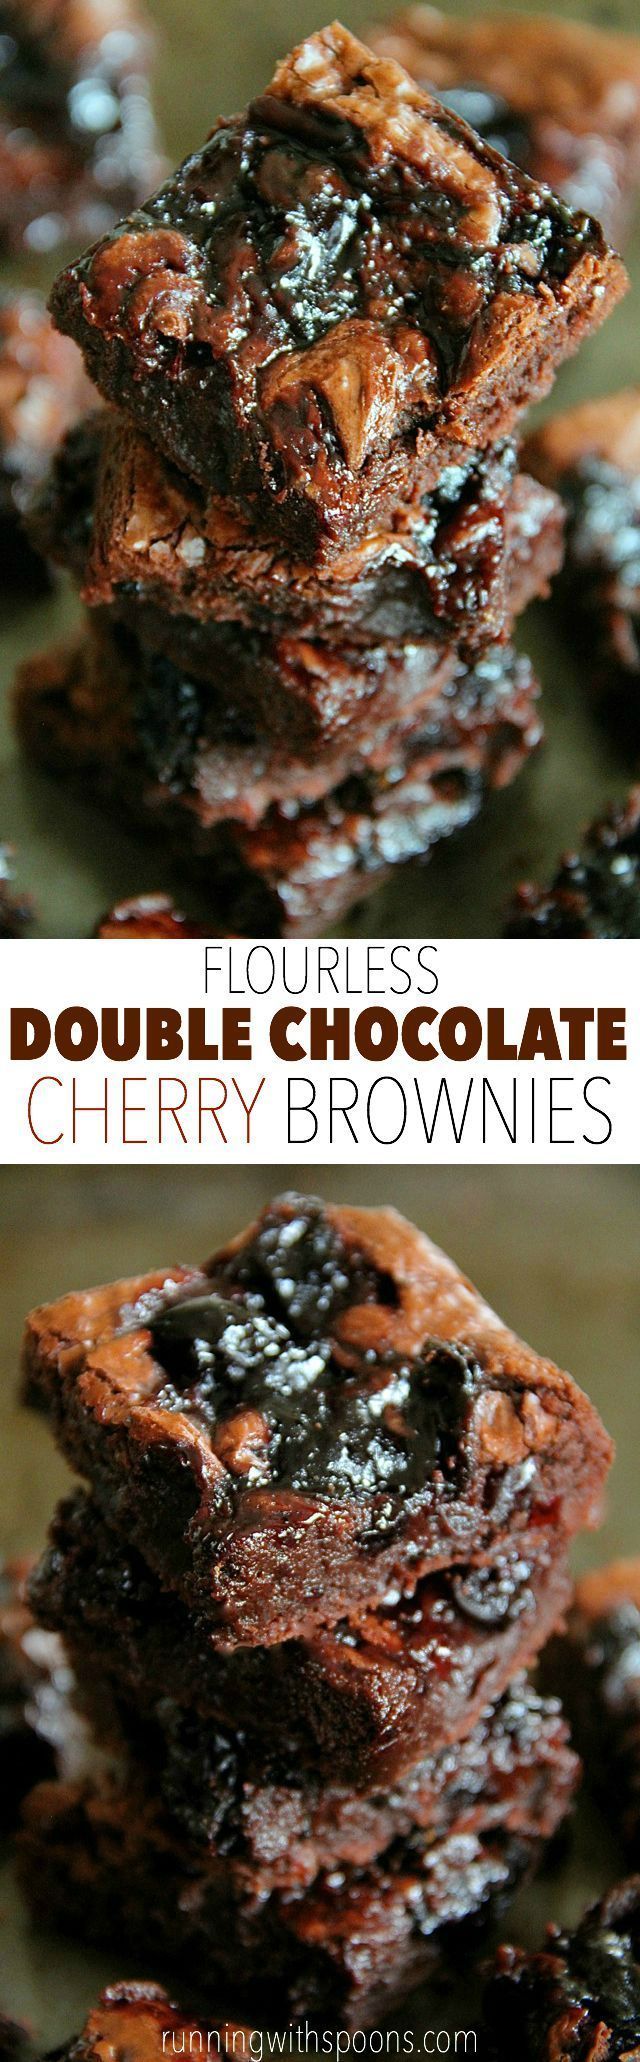 Flourless Double Chocolate Cherry Brownies -- rich and fudgy brownies that are grain-free and made without beans!    runningwithspoons... #glutenfree #chocolate #brownies